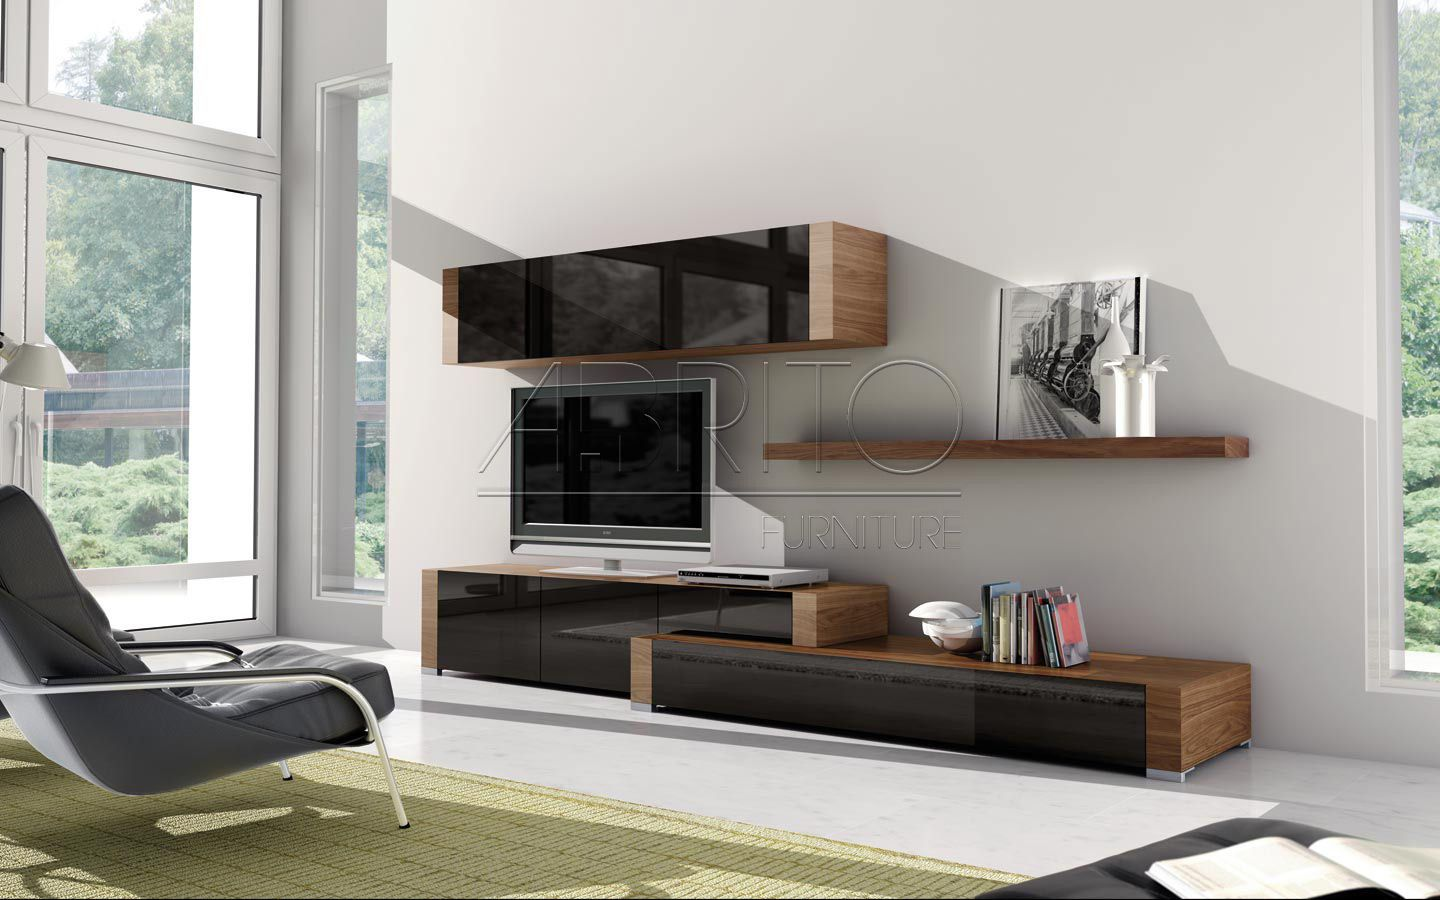 ensemble mural tv contemporain en verre en bois nagare. Black Bedroom Furniture Sets. Home Design Ideas